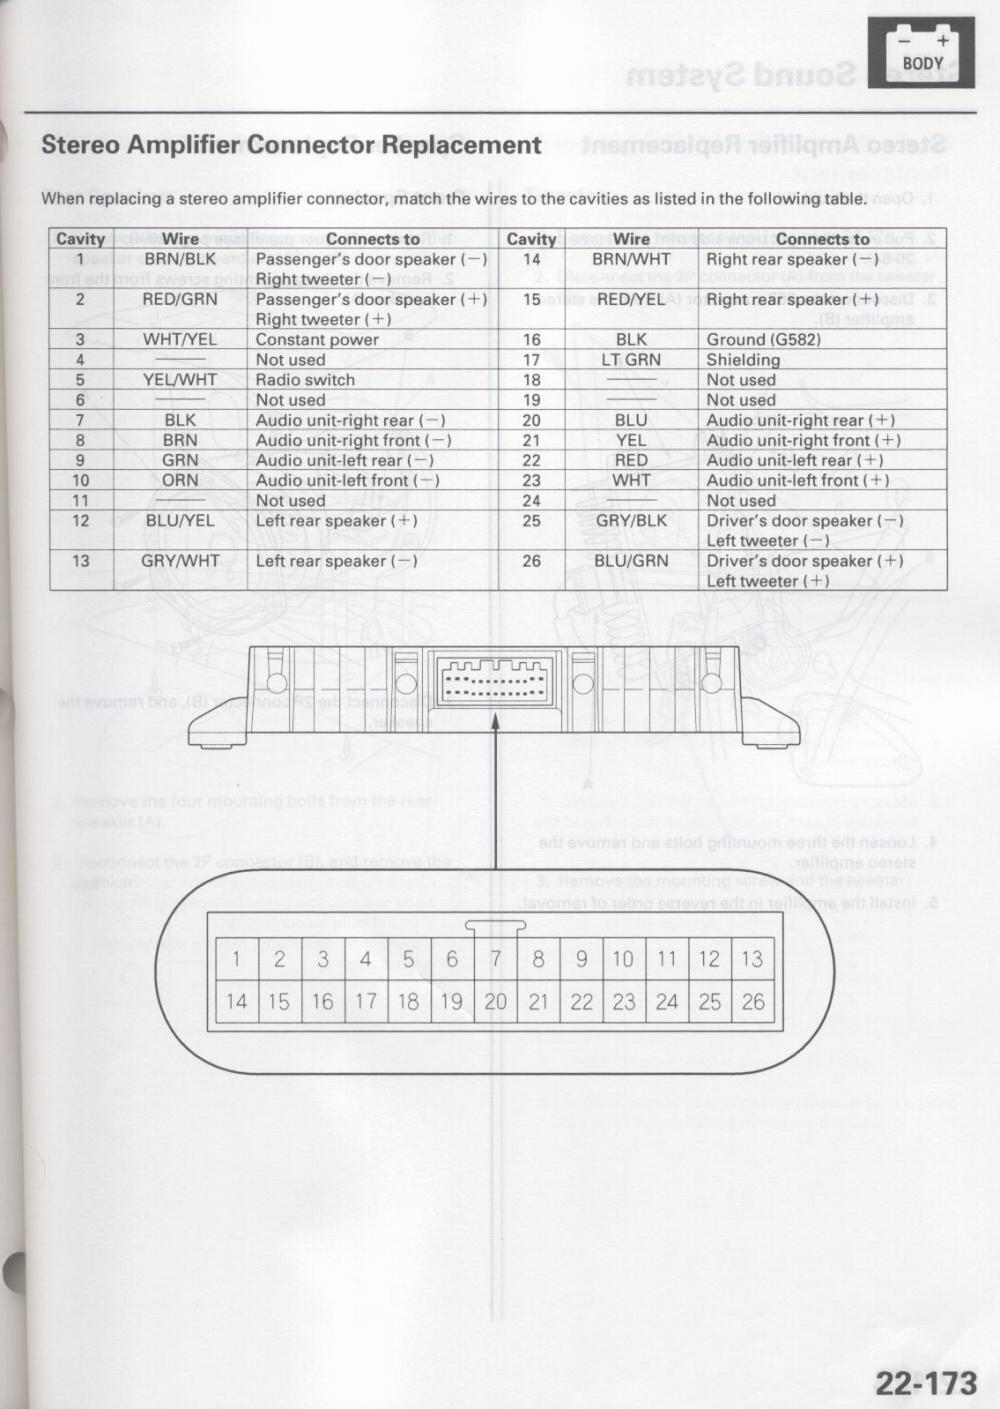 car radio stereo audio wiring diagram autoradio connector wire rh  tehnomagazin com 2005 Acura TL Fuse Box Diagram 2006 Acura TL Fuse Box  Diagram